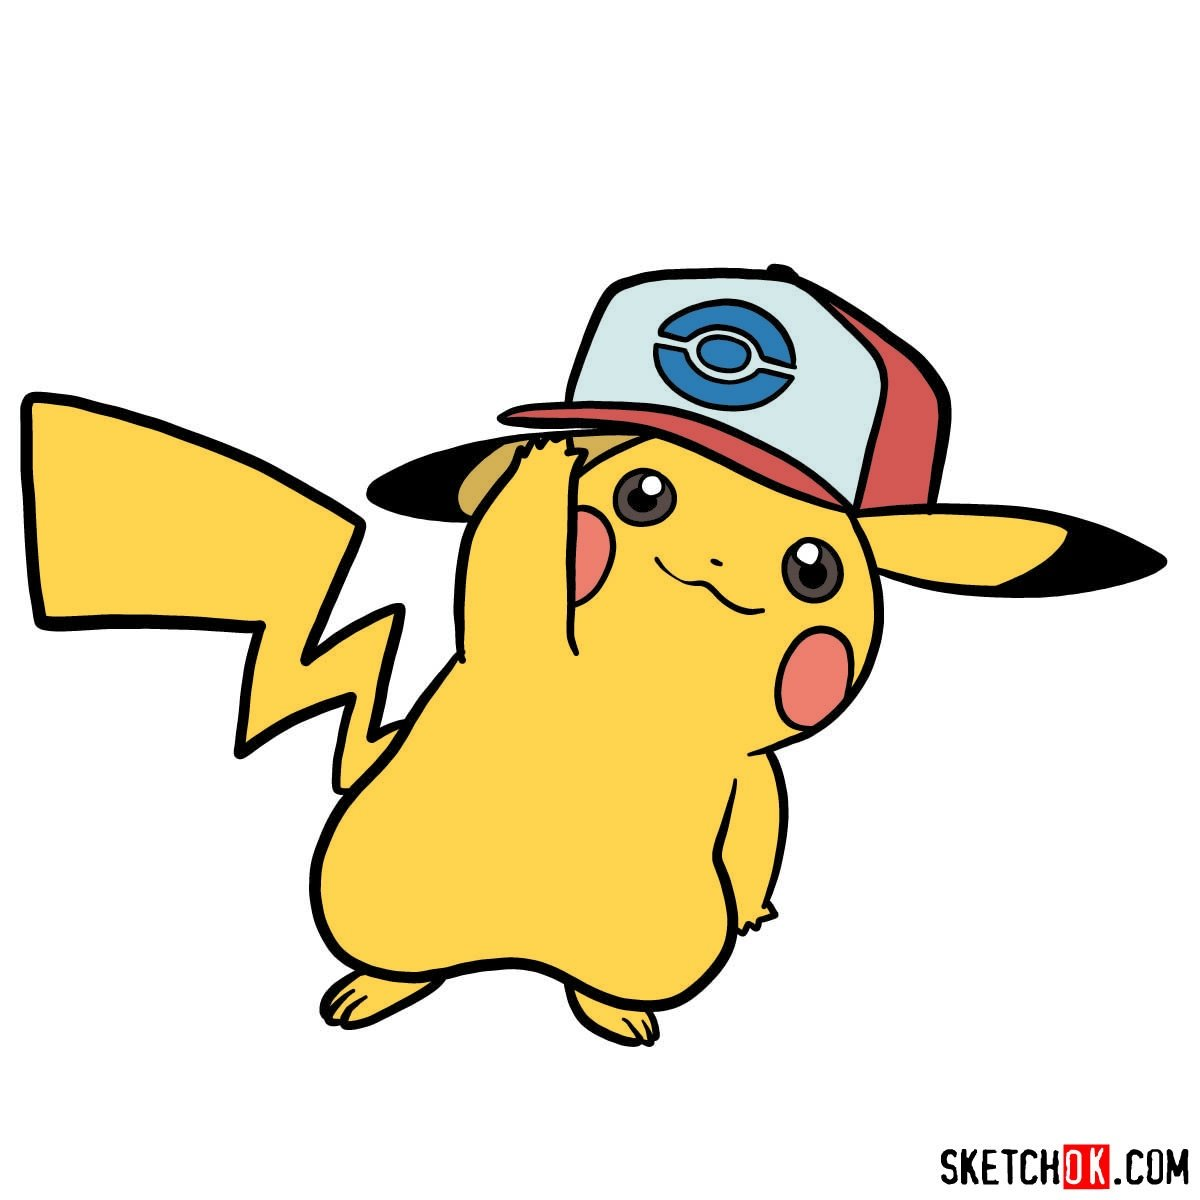 How to draw Pikachu in a cap with pokeball logo - coloring